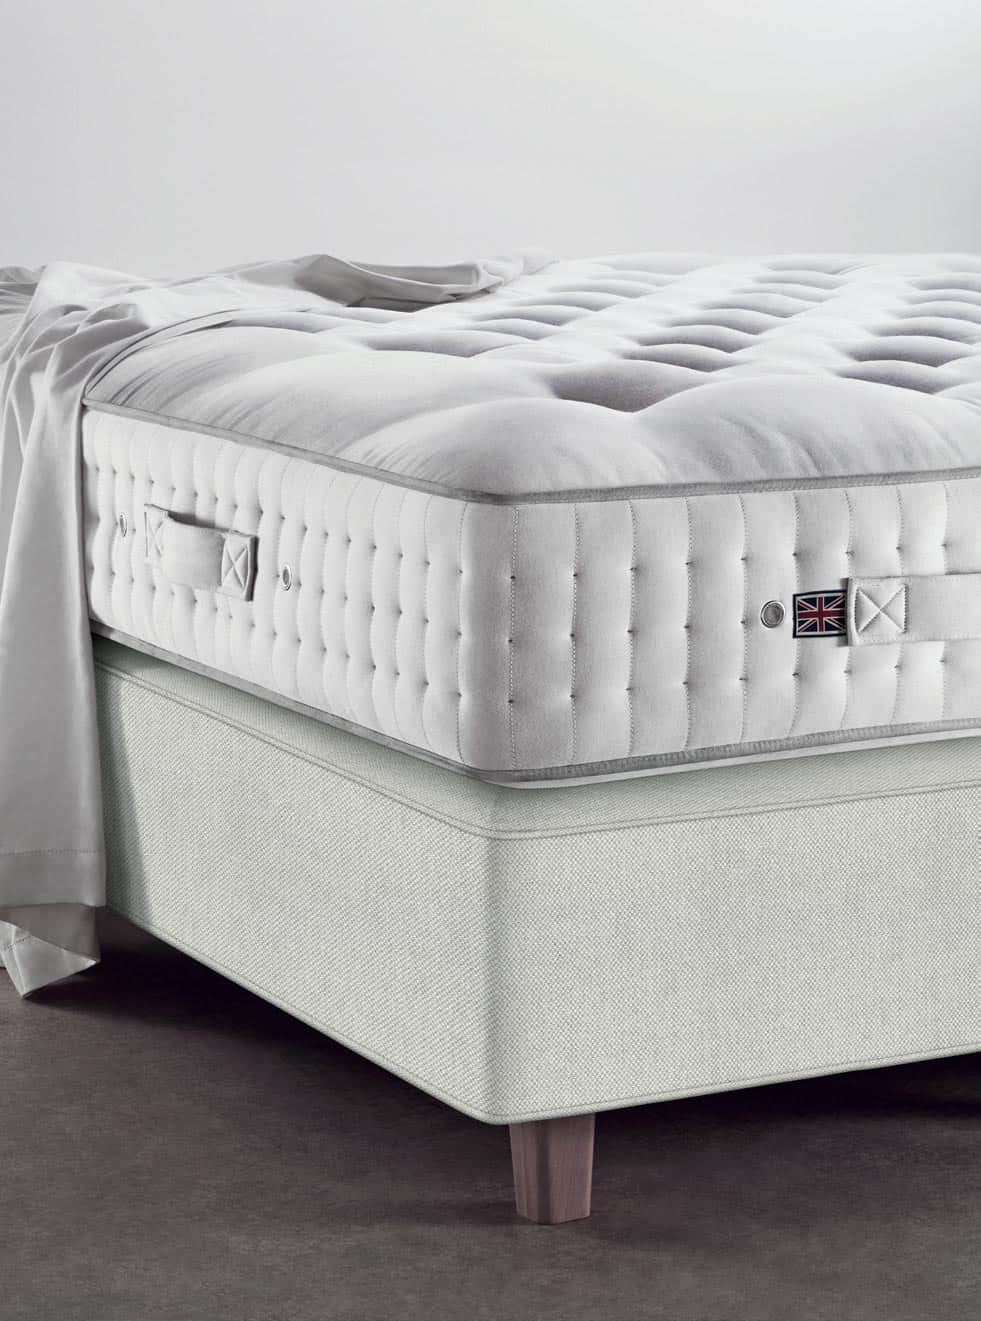 Vispring Regent mattress and Prestige Divan corner